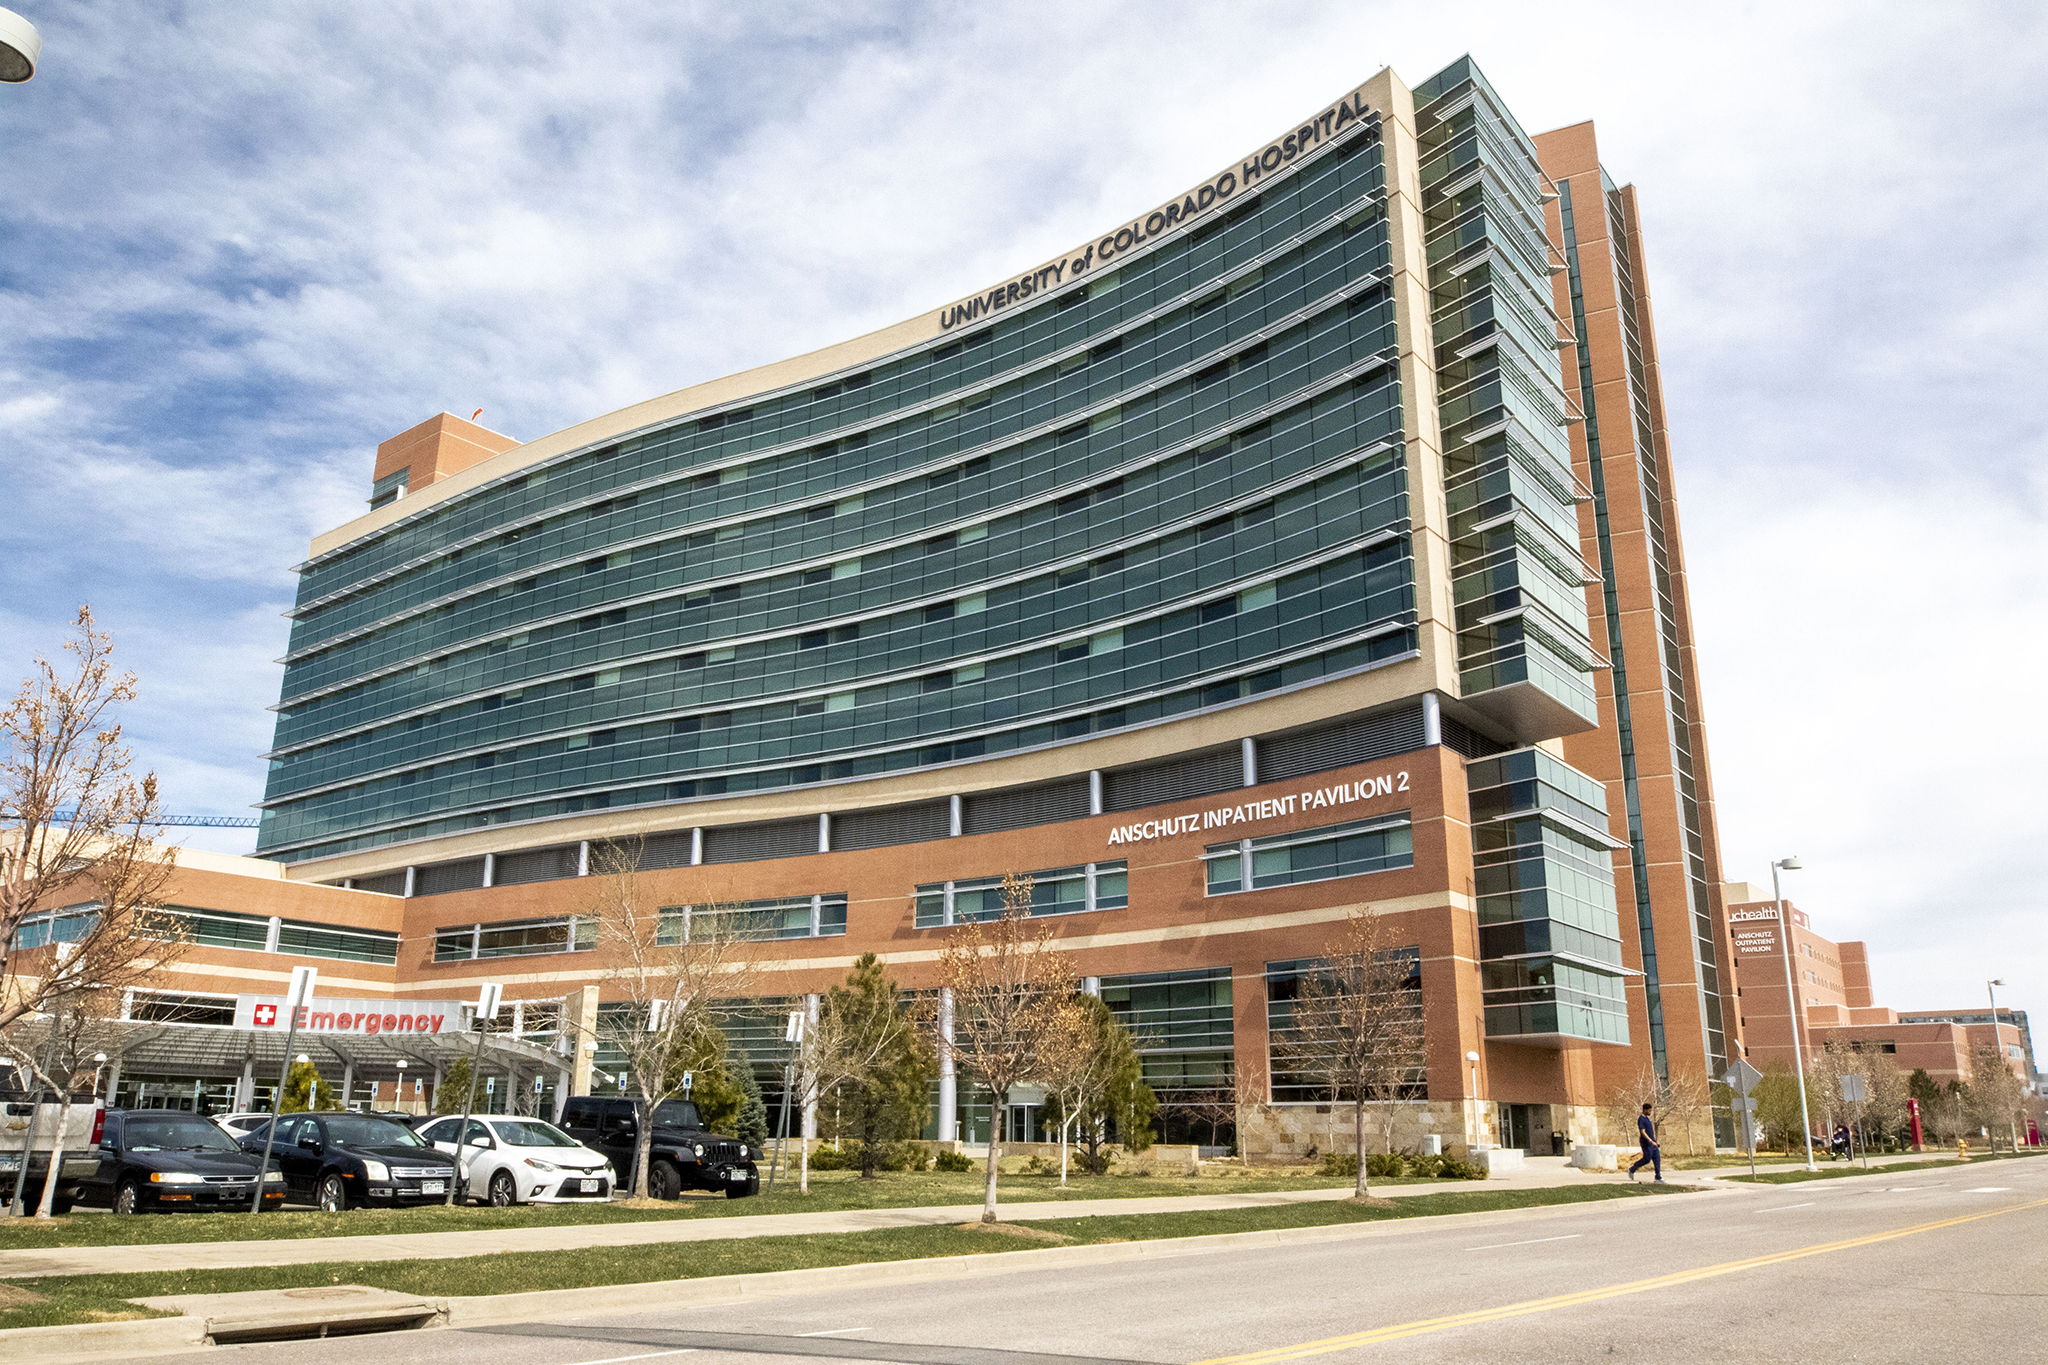 The University of Colorado Hospital. April 1, 2020. (Kevin J. Beaty/Denverite)